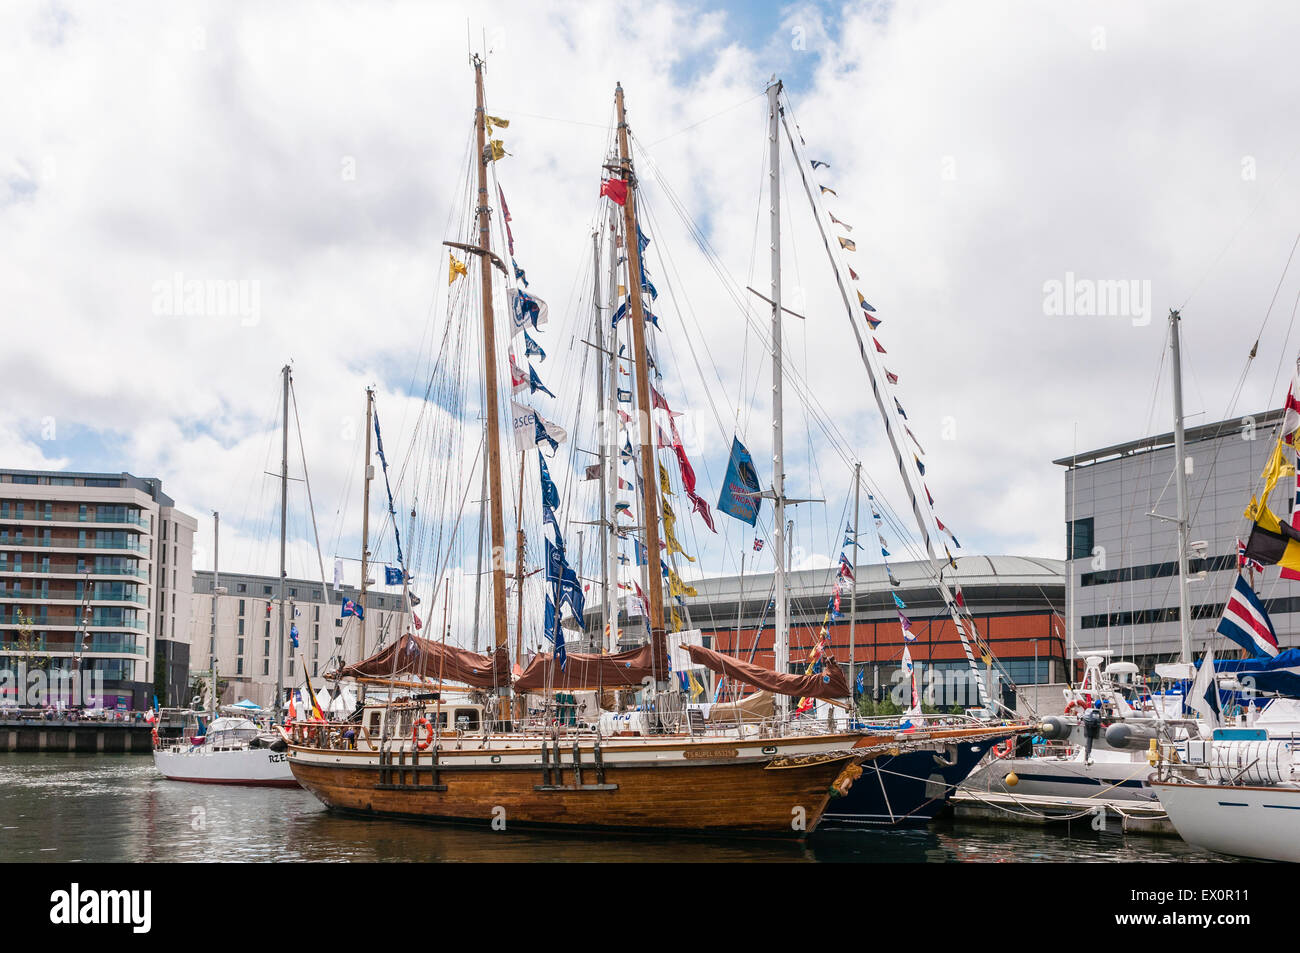 Belfast, Northern Ireland, UK. 03rd July, 2015. A wooden hulled training sailing boat berthed in Belfast Credit: - Stock Image